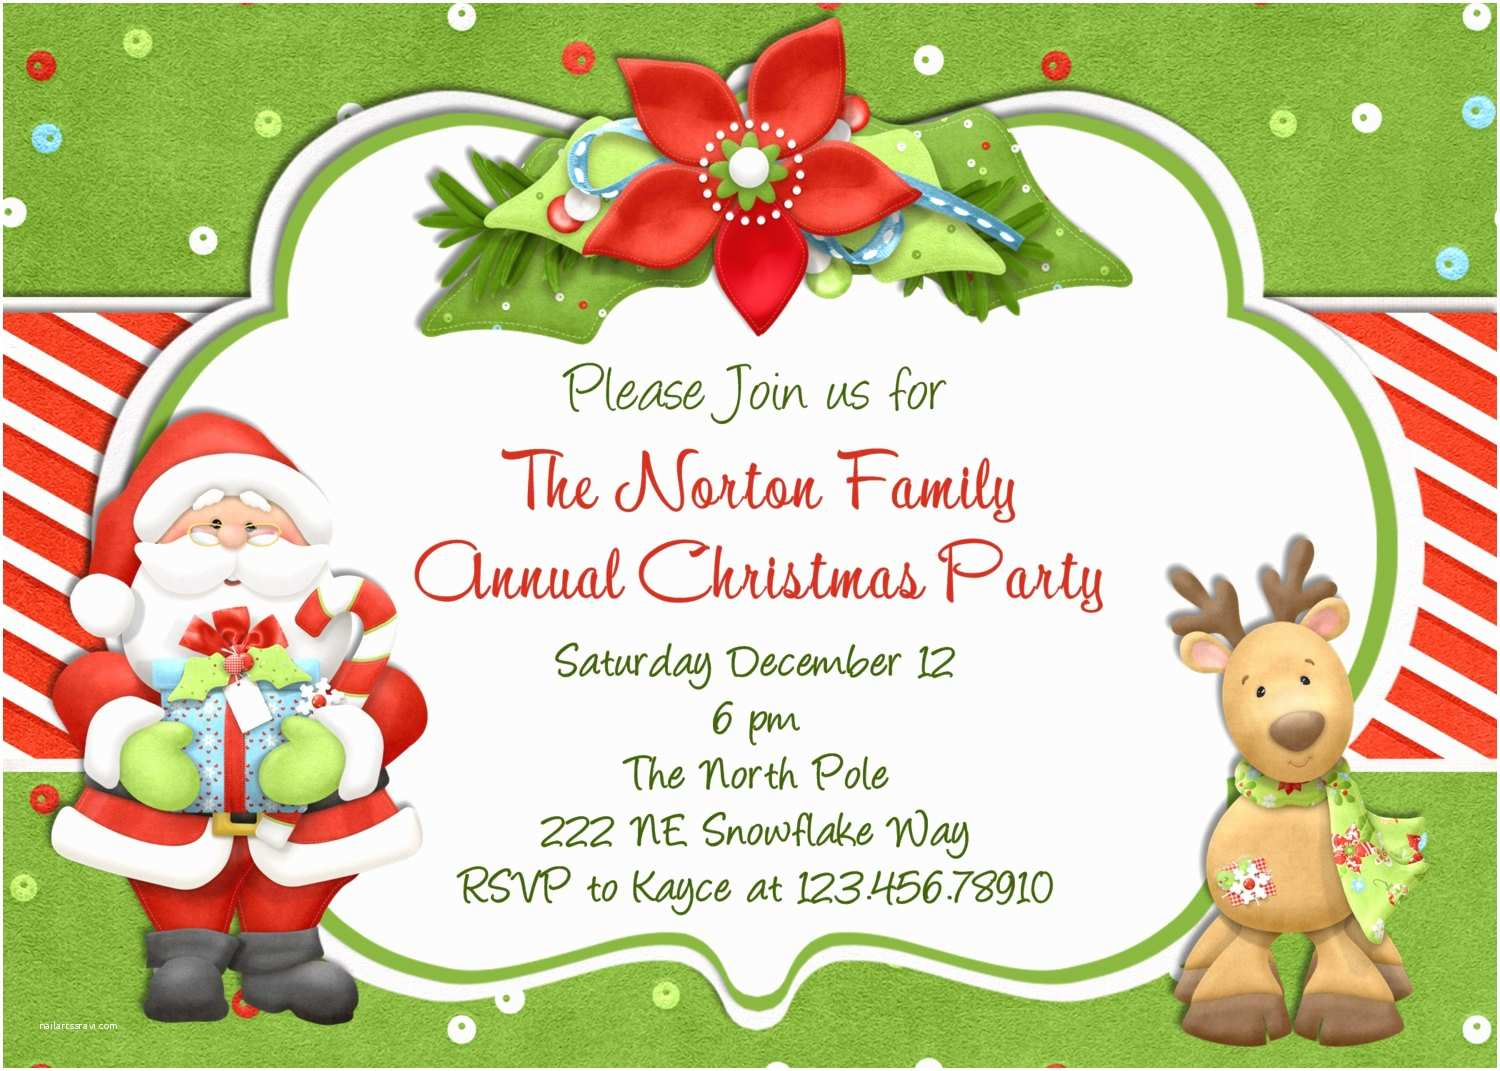 Sample Christmas Party Invitation Christmas Party Invitations Christmas Party Invitations In